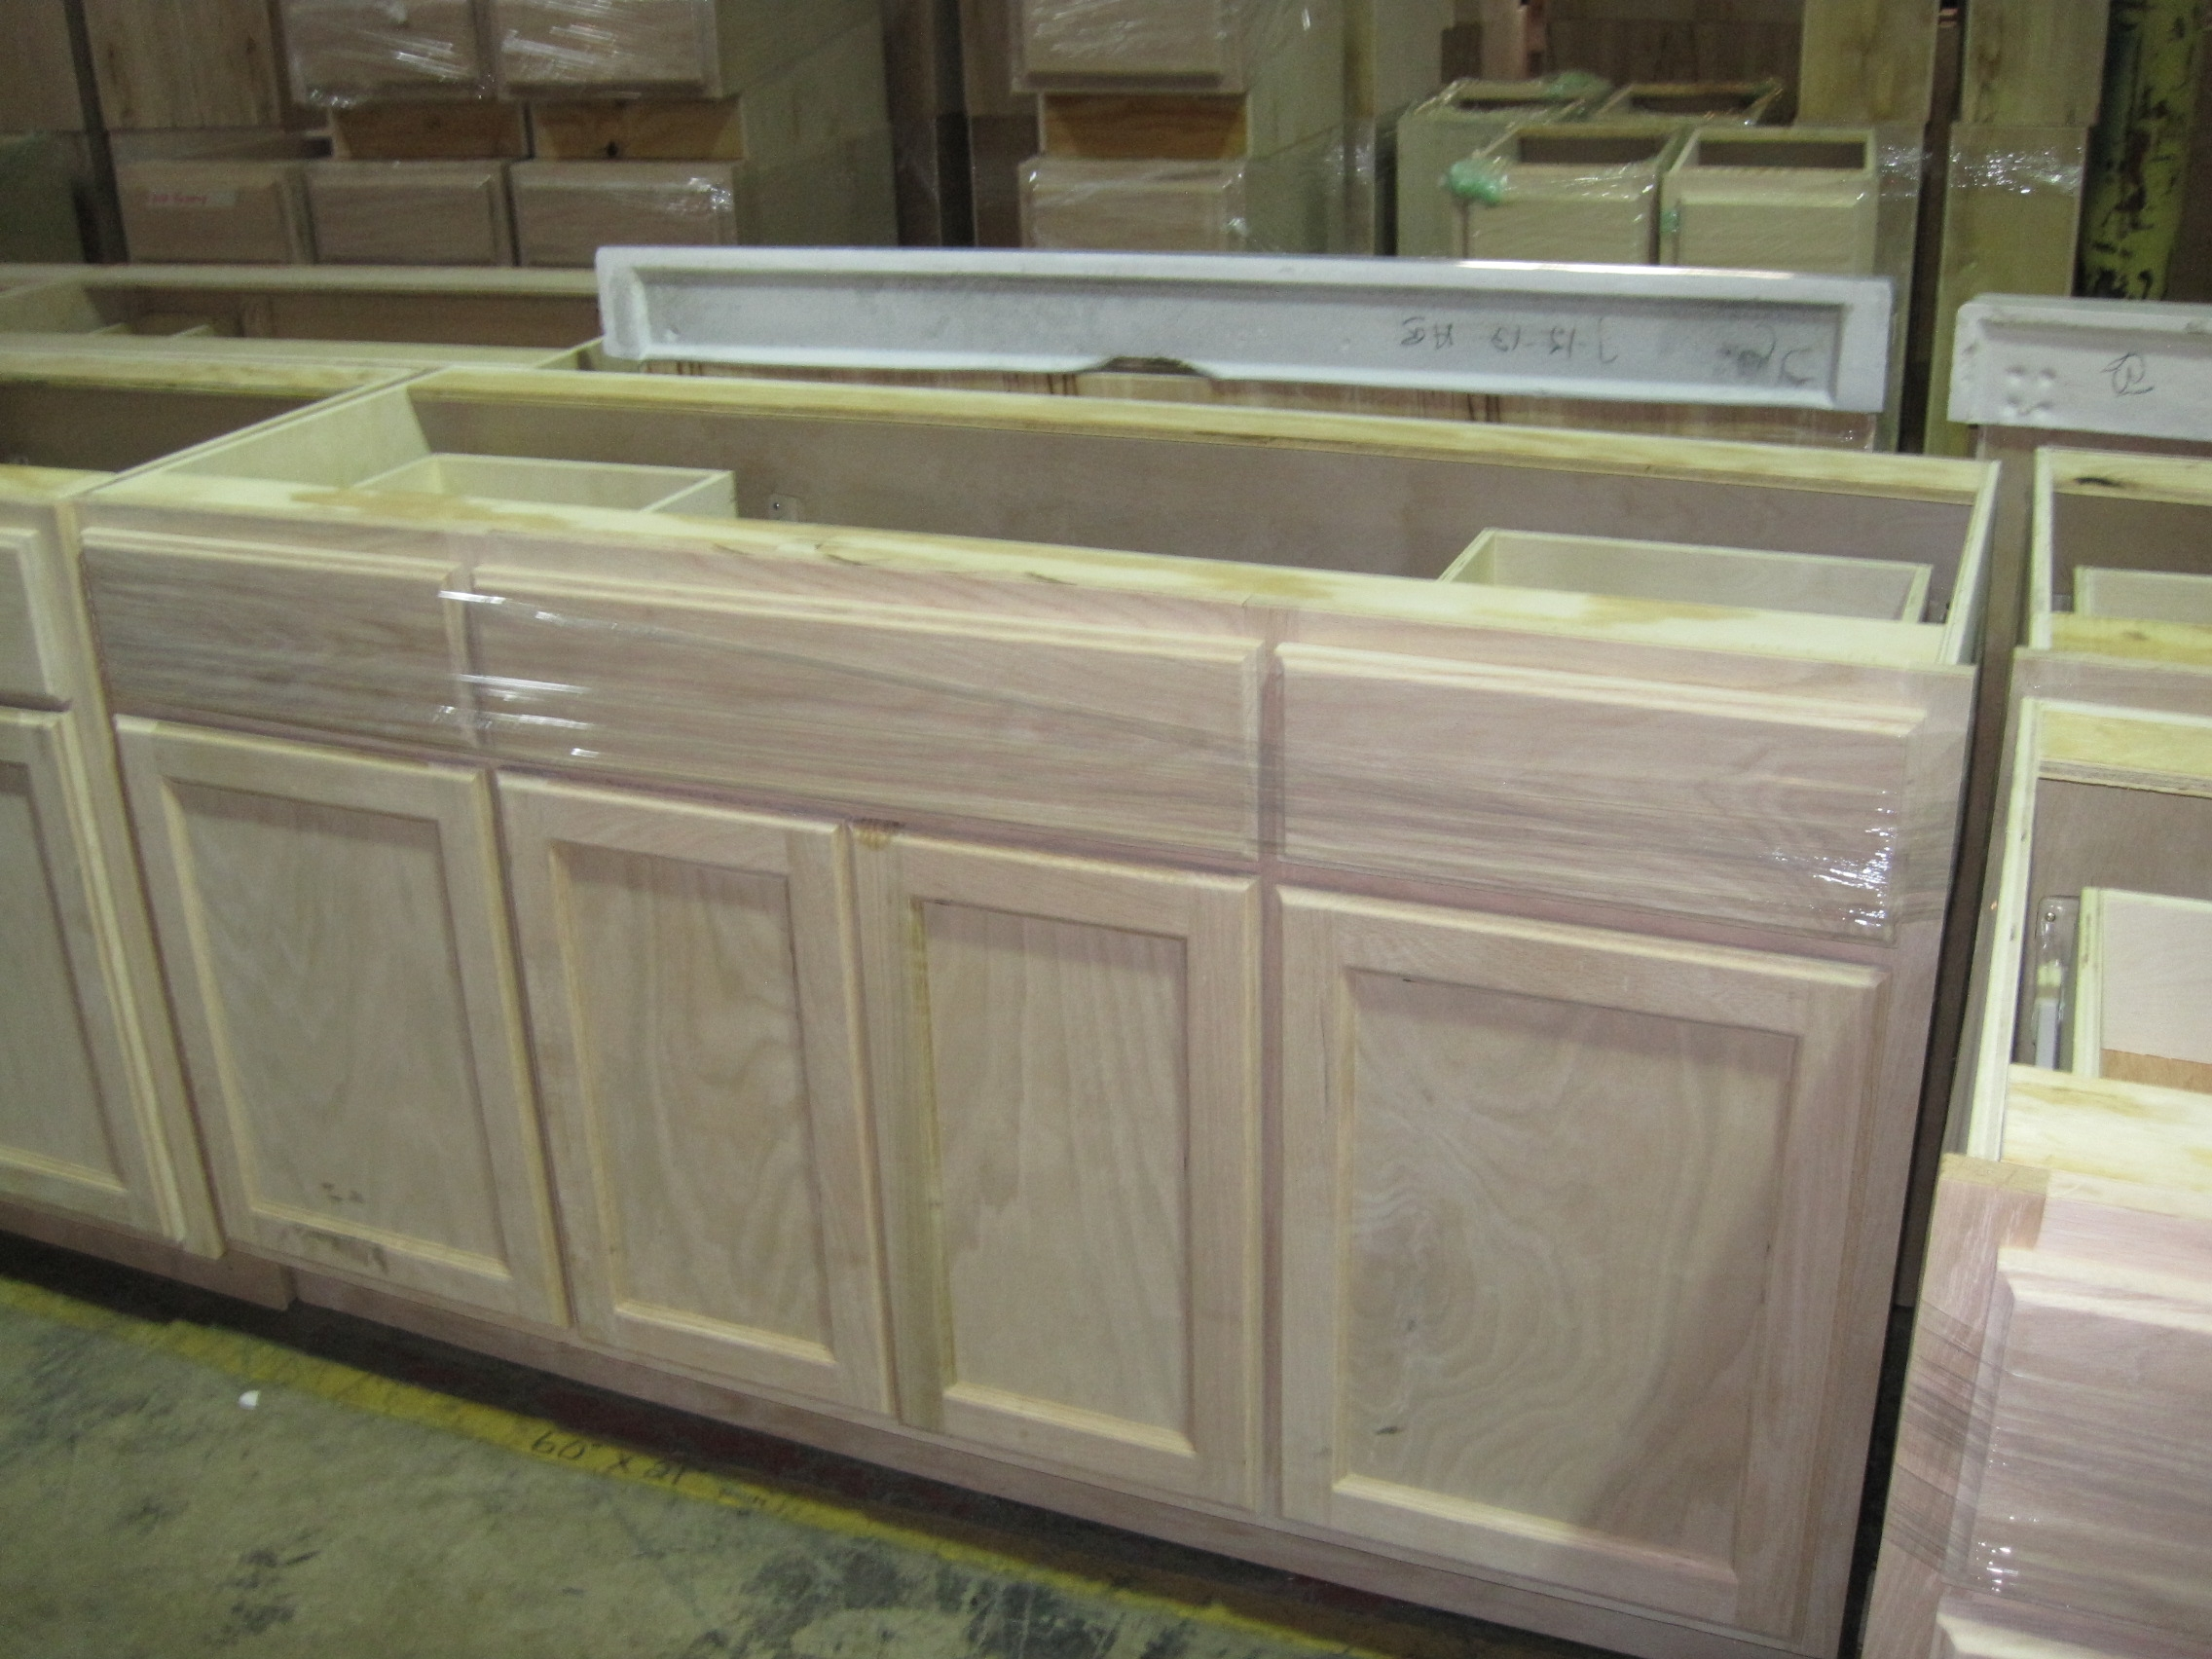 Kitchen Sinks For 30 Inch Cabinets